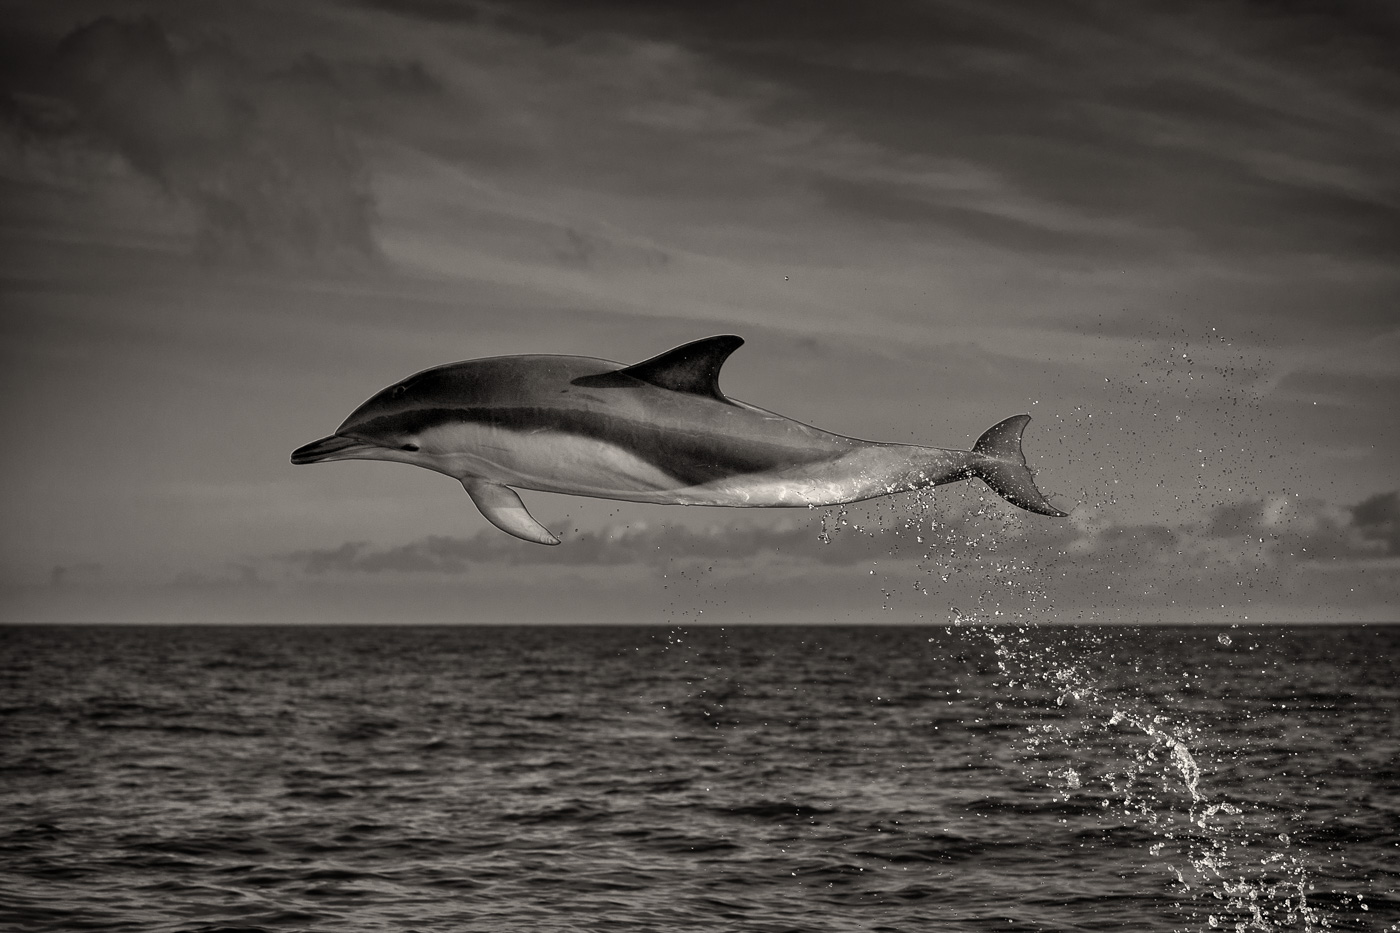 common dolphin in air black and white | George Karbus ...